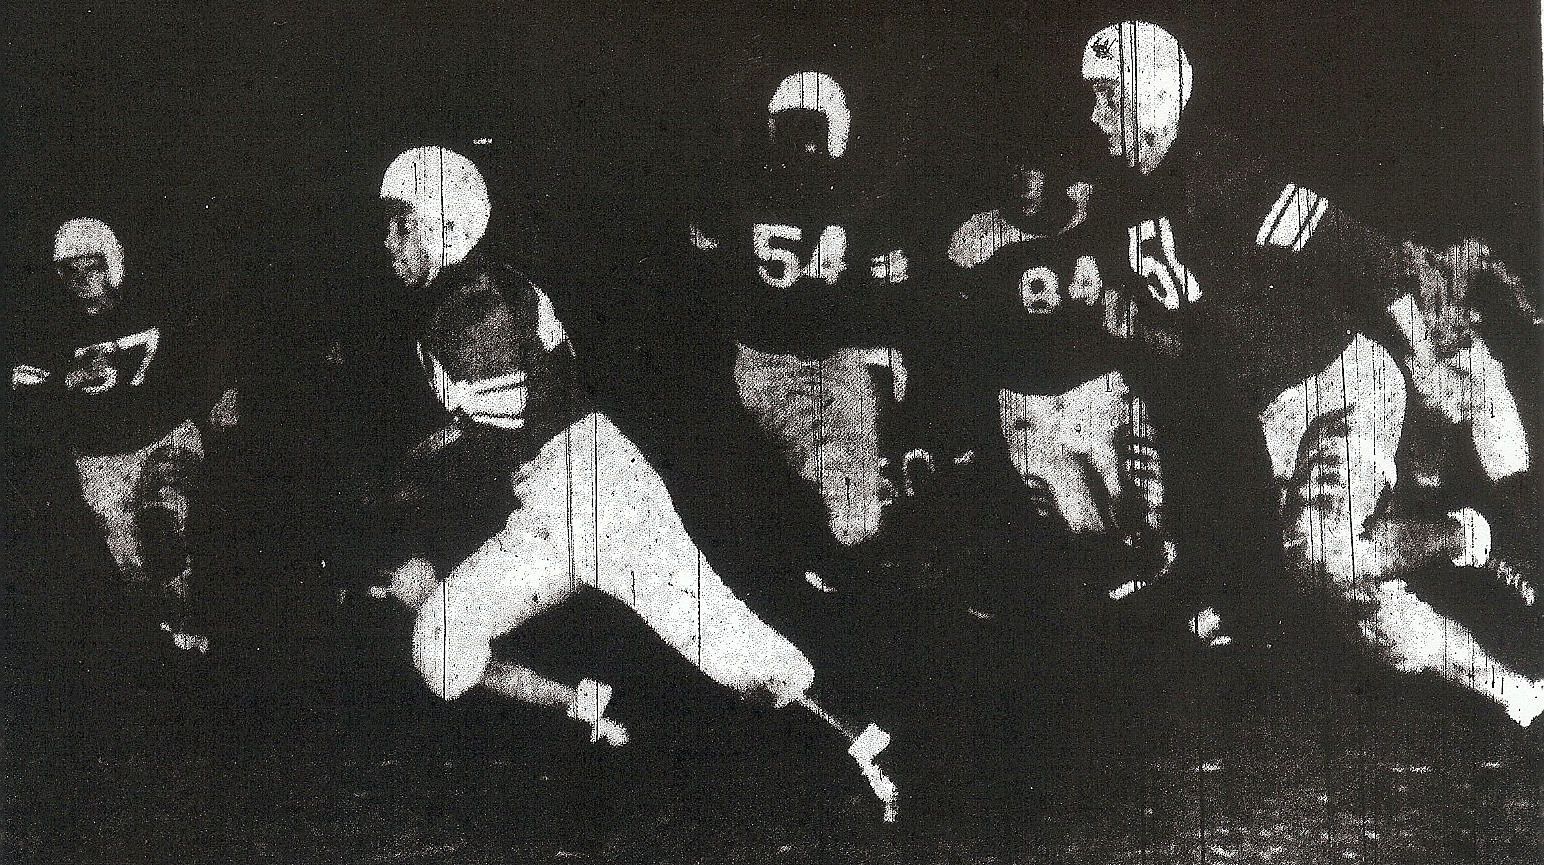 Ted Ritchey is in front of his convoy, Gen e Edwards (57), Ernie Smith (54), and Bob Conklin (51) as San Diego routed Hoover, 48-7.